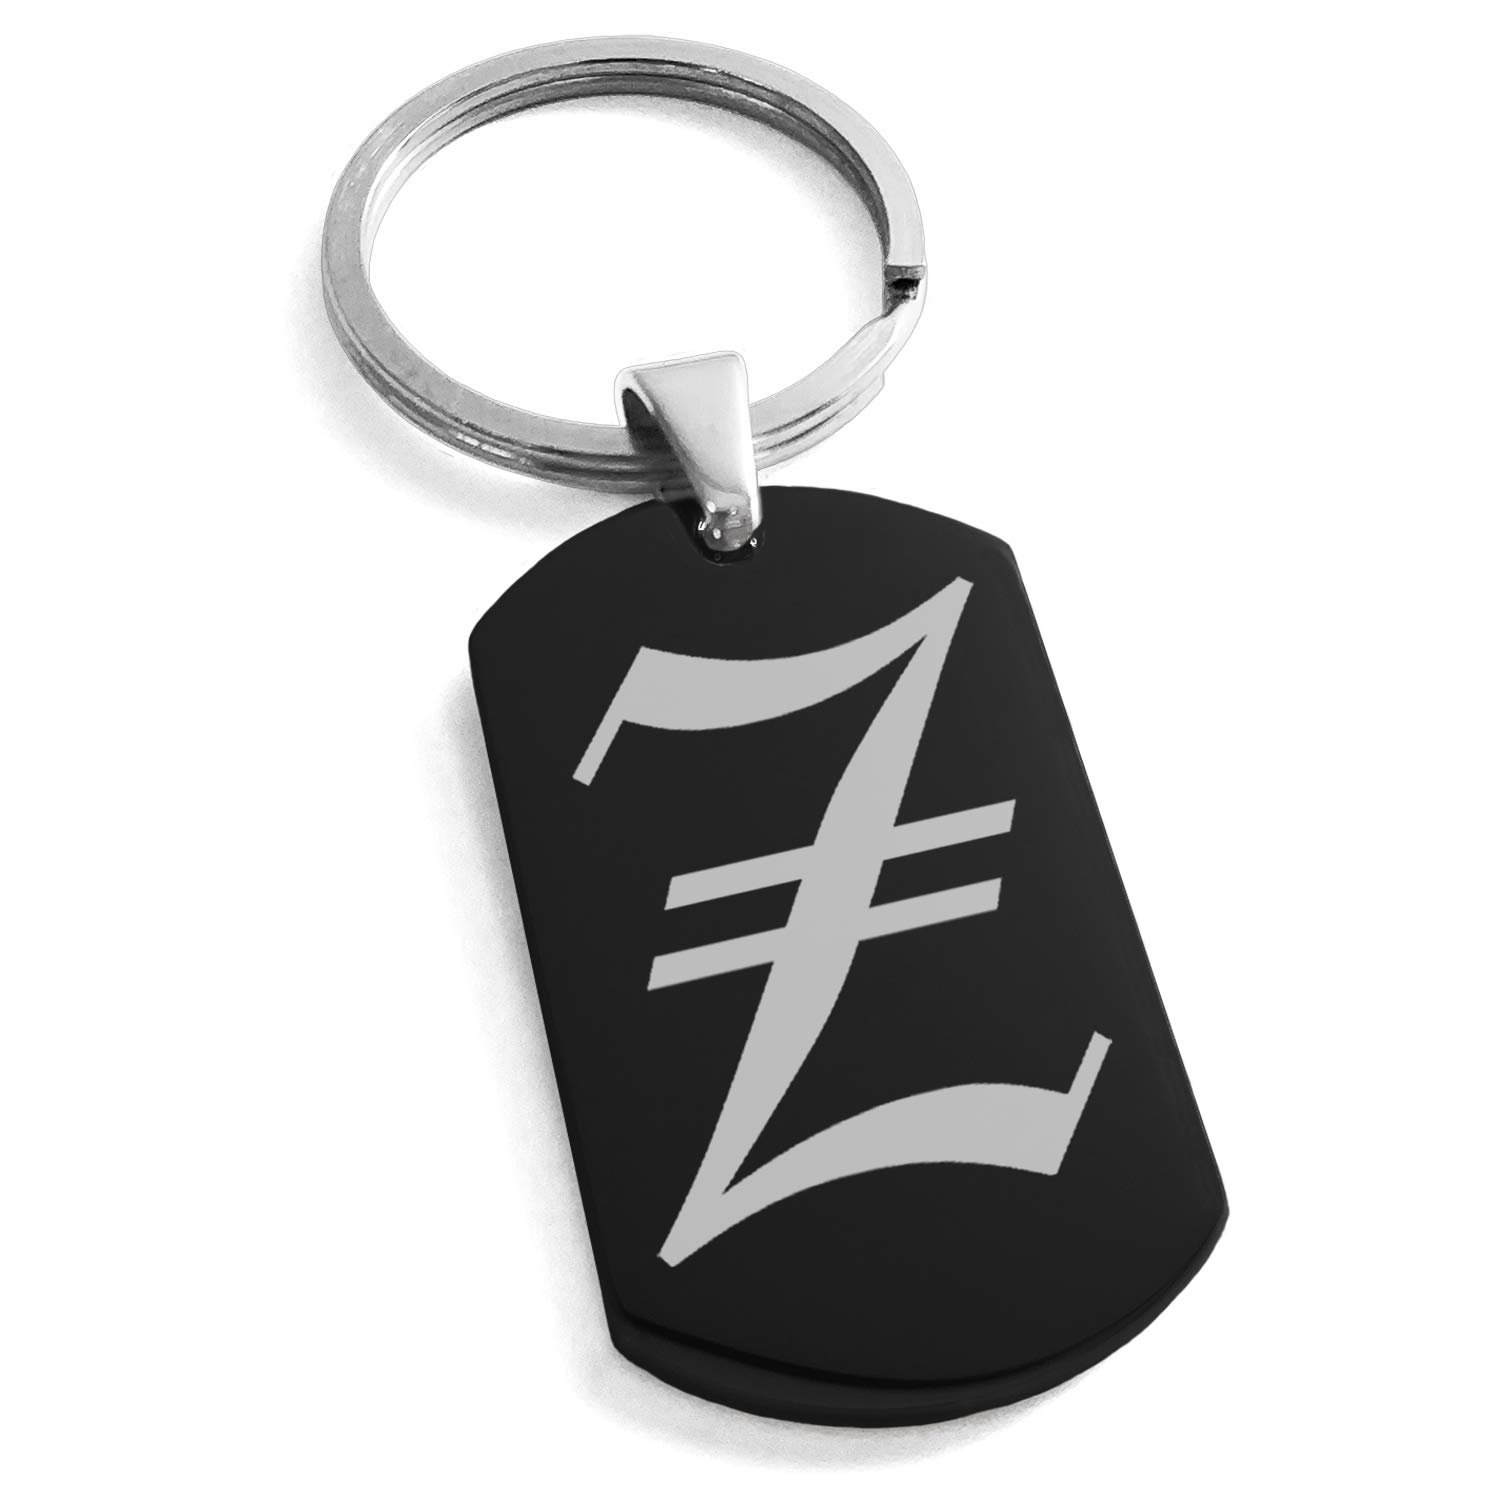 Tioneer Black Stainless Steel Letter Z Initial Old English Monogram Engraved Dog Tag Keychain Keyring